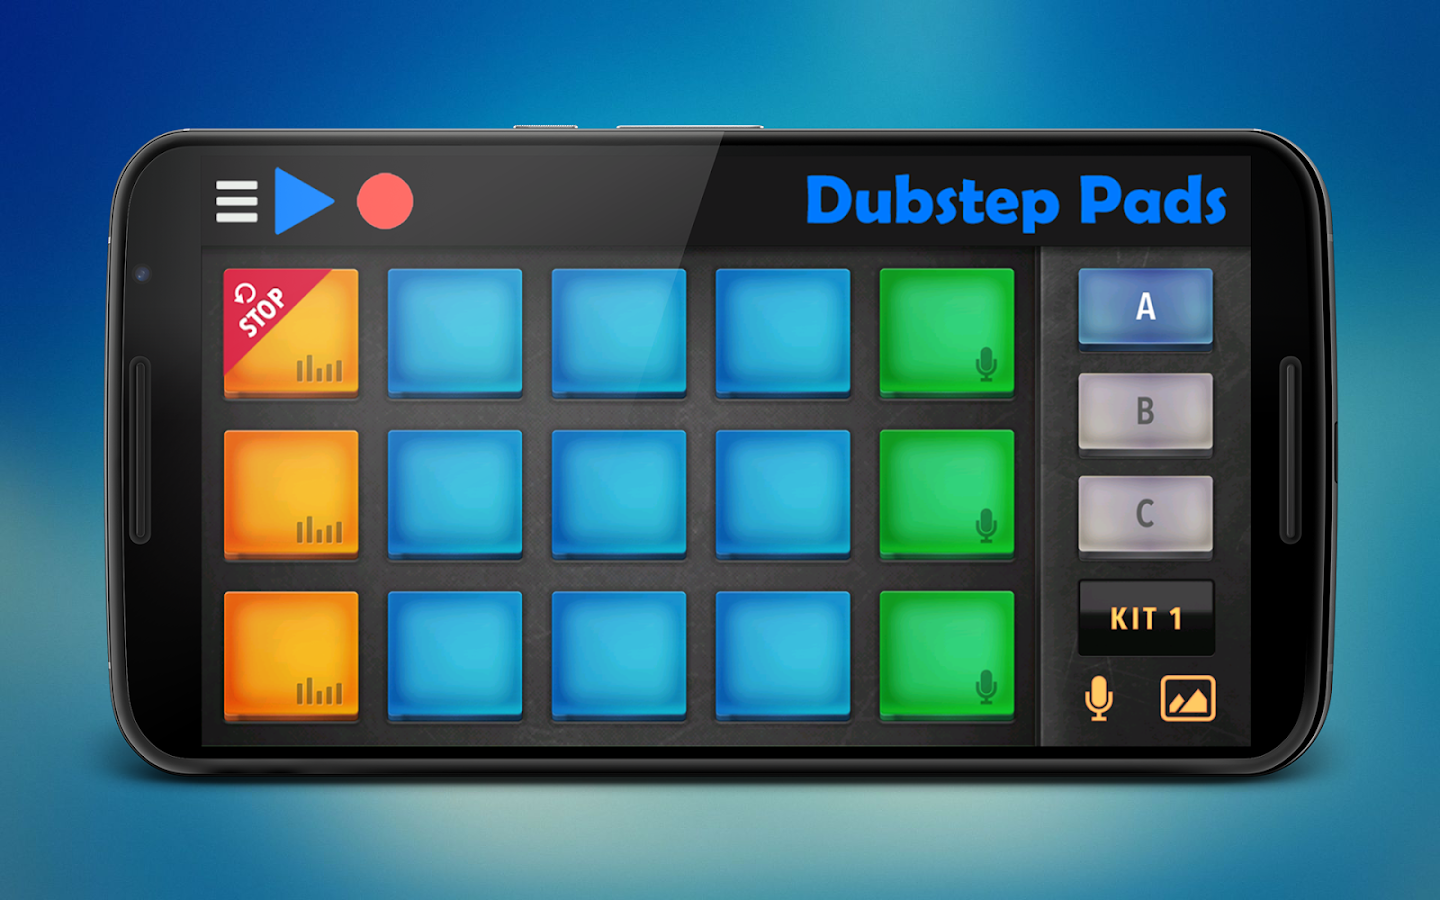 how to make dubstep music in garageband